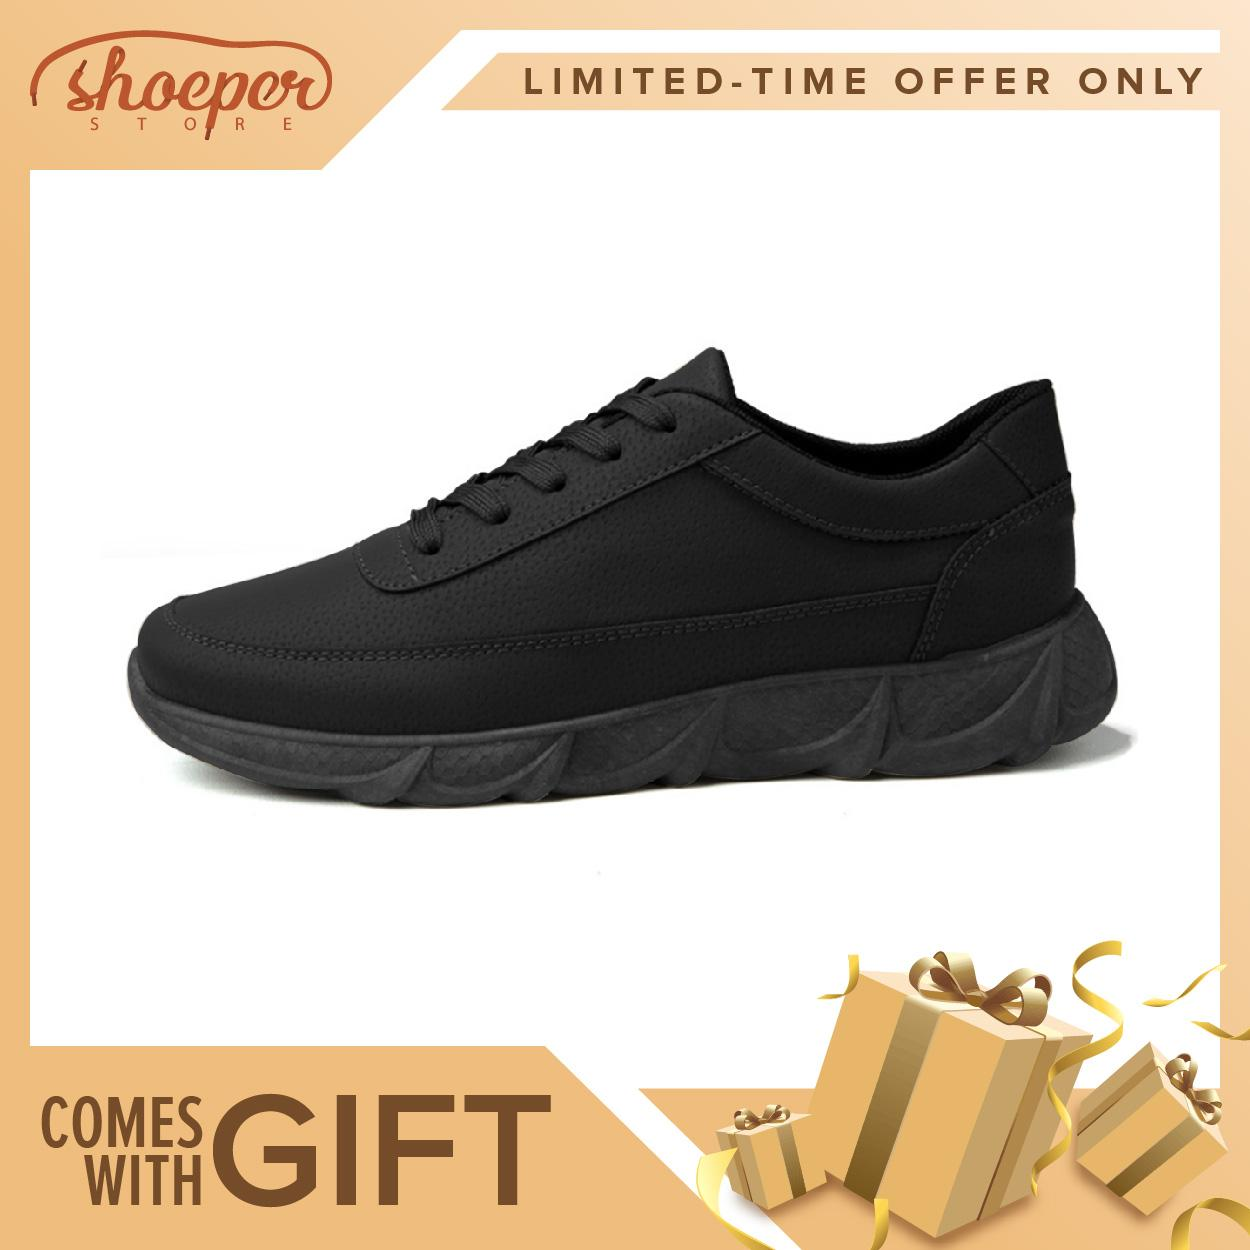 separation shoes f18d4 0ad0d ShoePer RYS-2 Sneakers Shoes for Men Jogging Walking Lace-up Anti-Skid